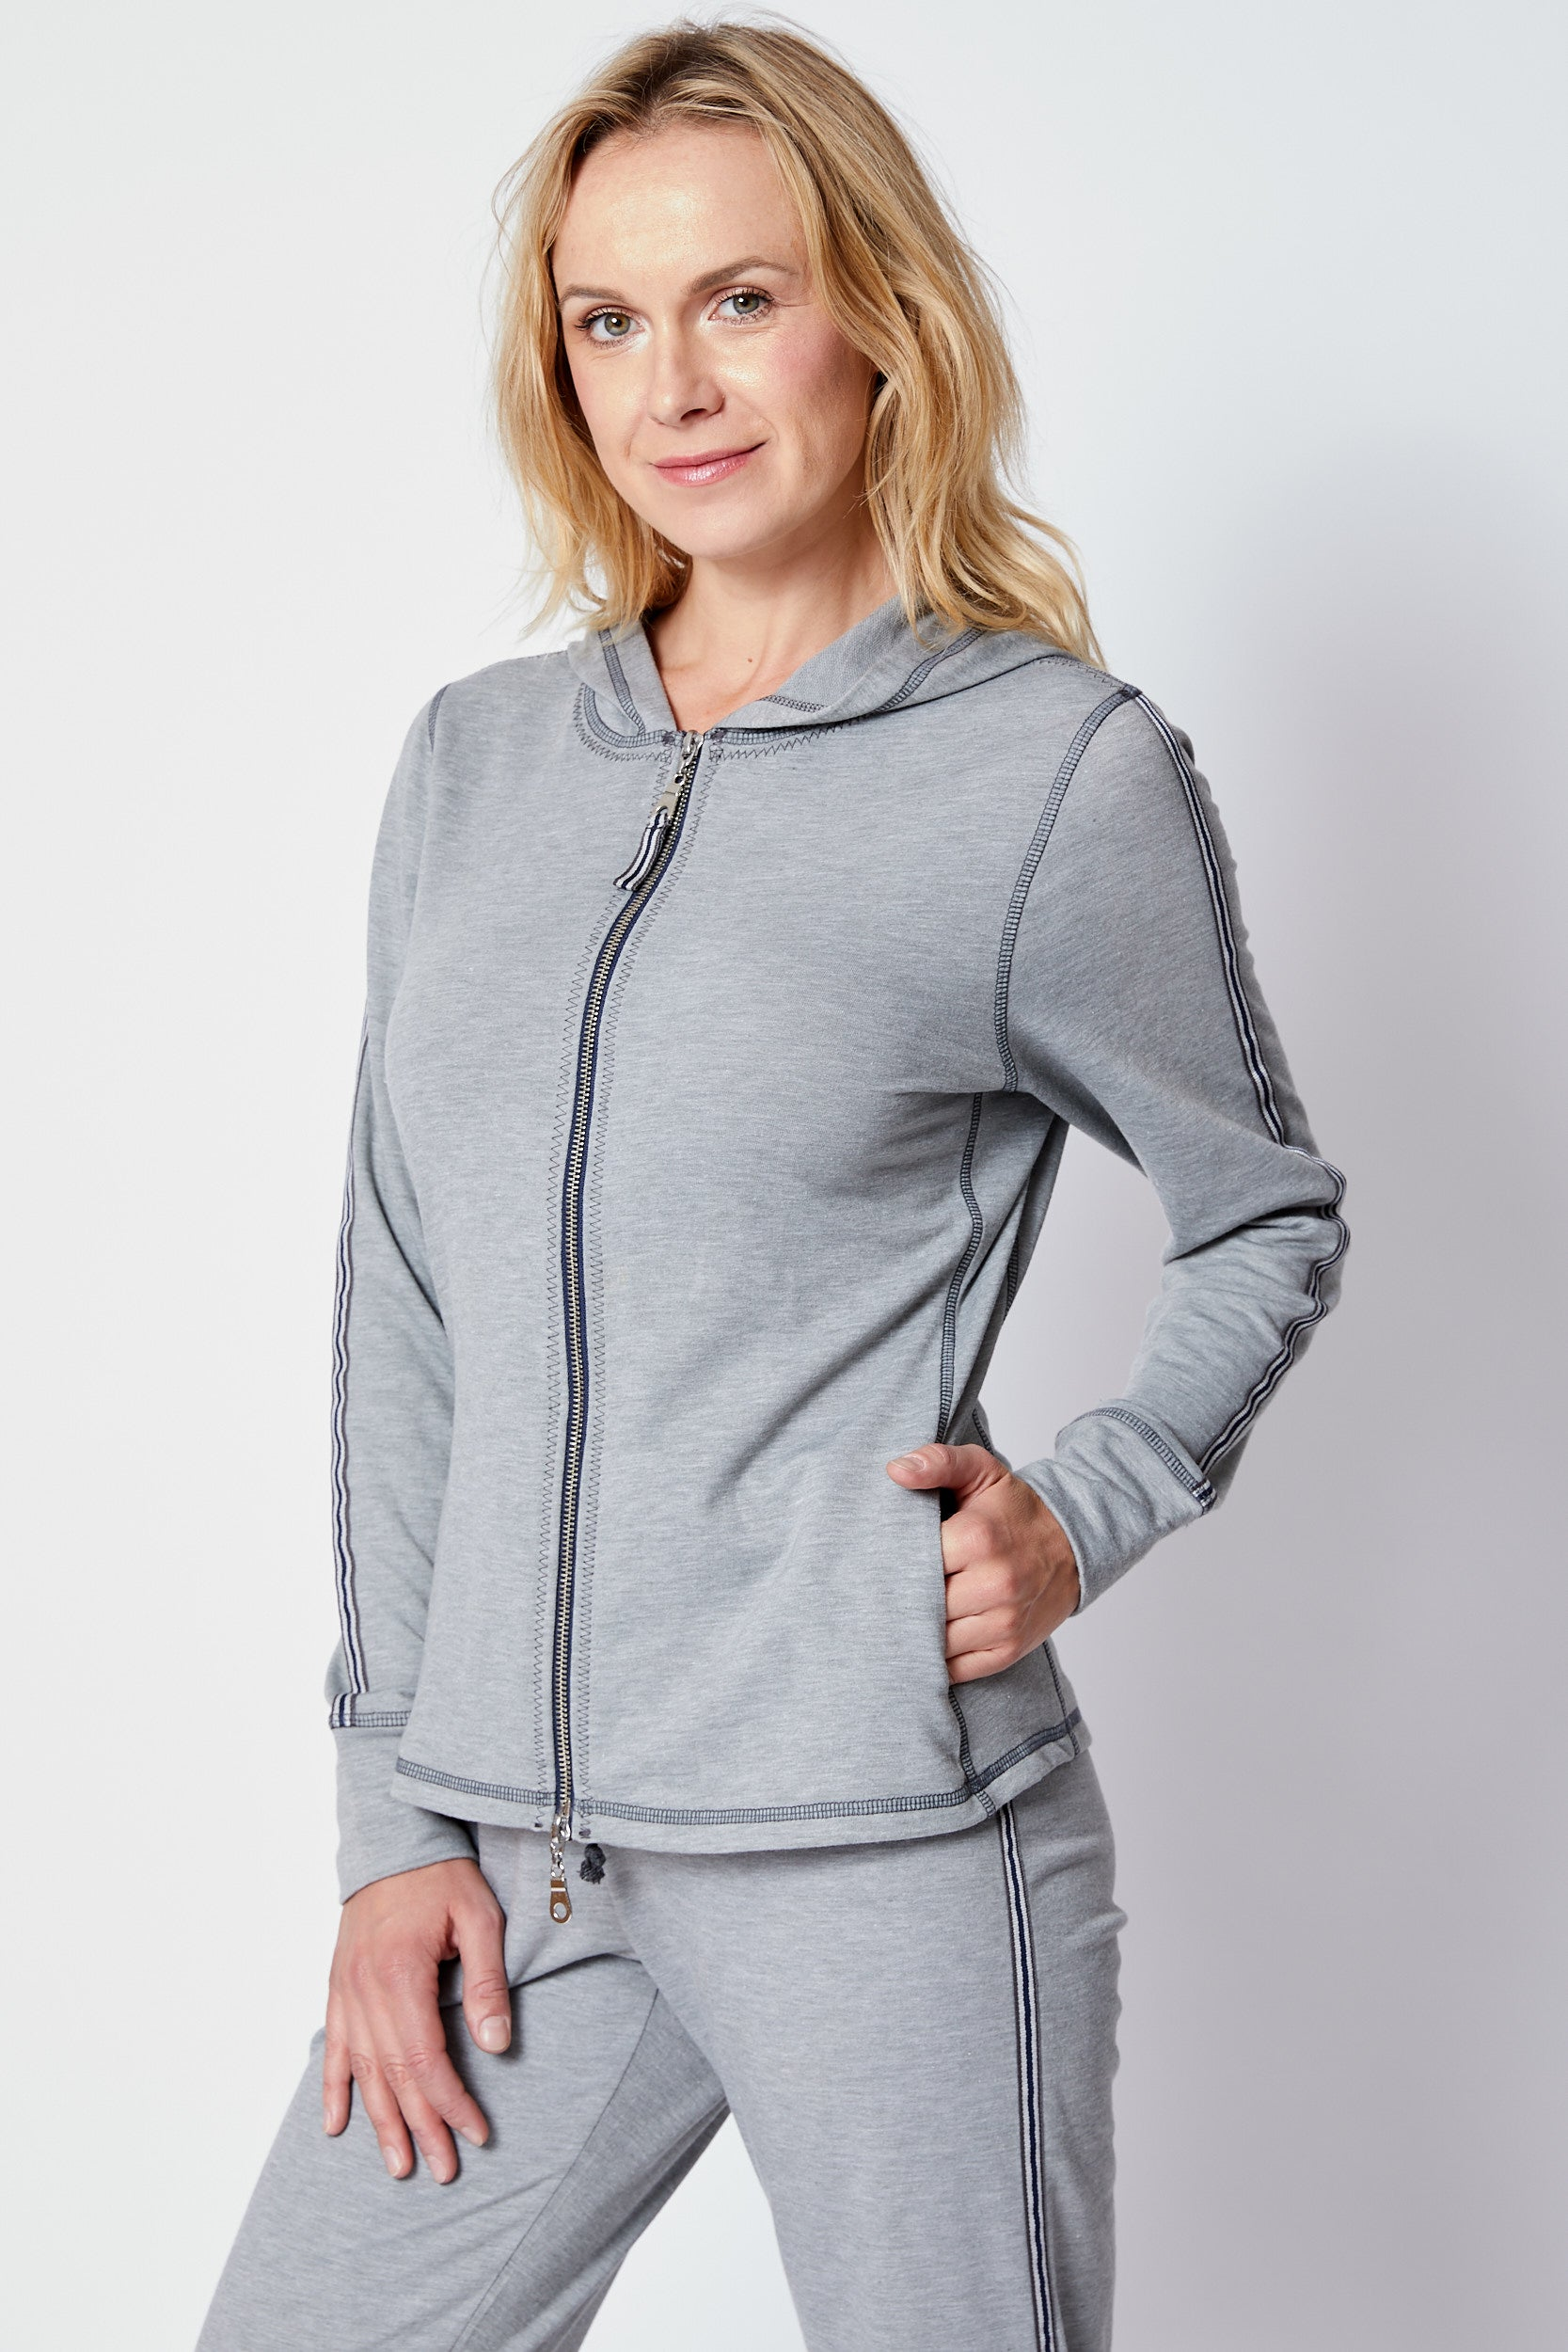 Gray Racer Stripe Sweats - Jacqueline B Clothing